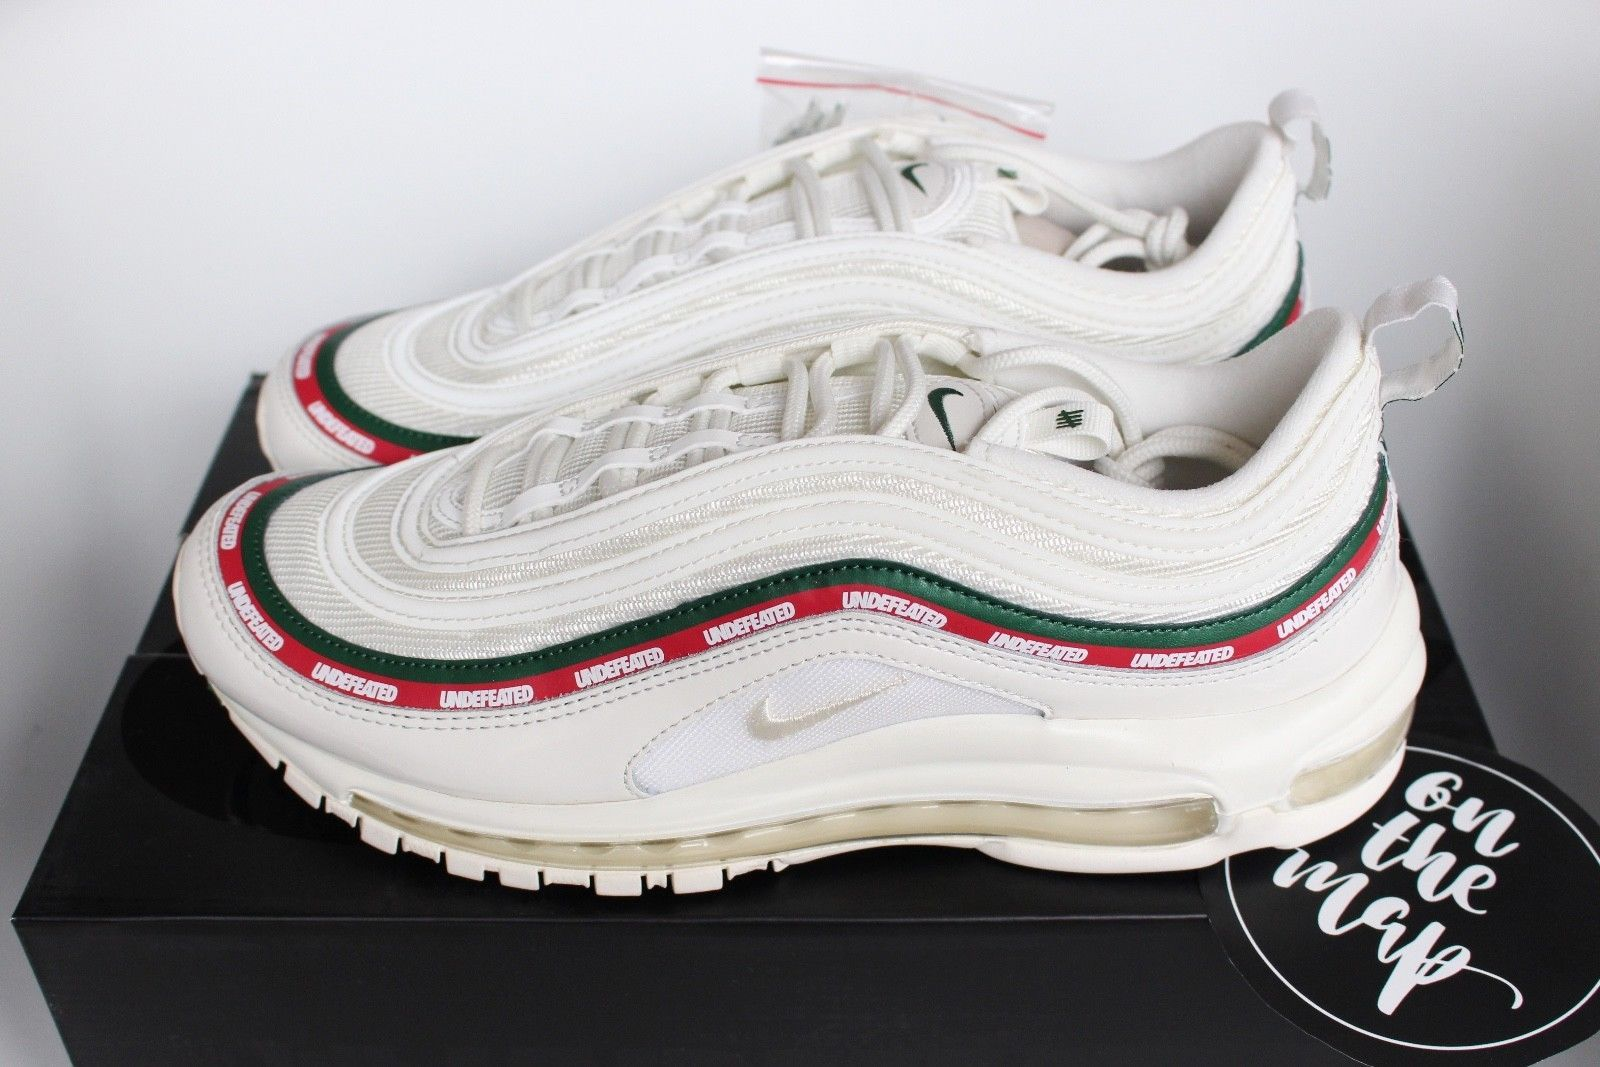 Details about Nike x Undefeated Air Max 97 OG White Cream